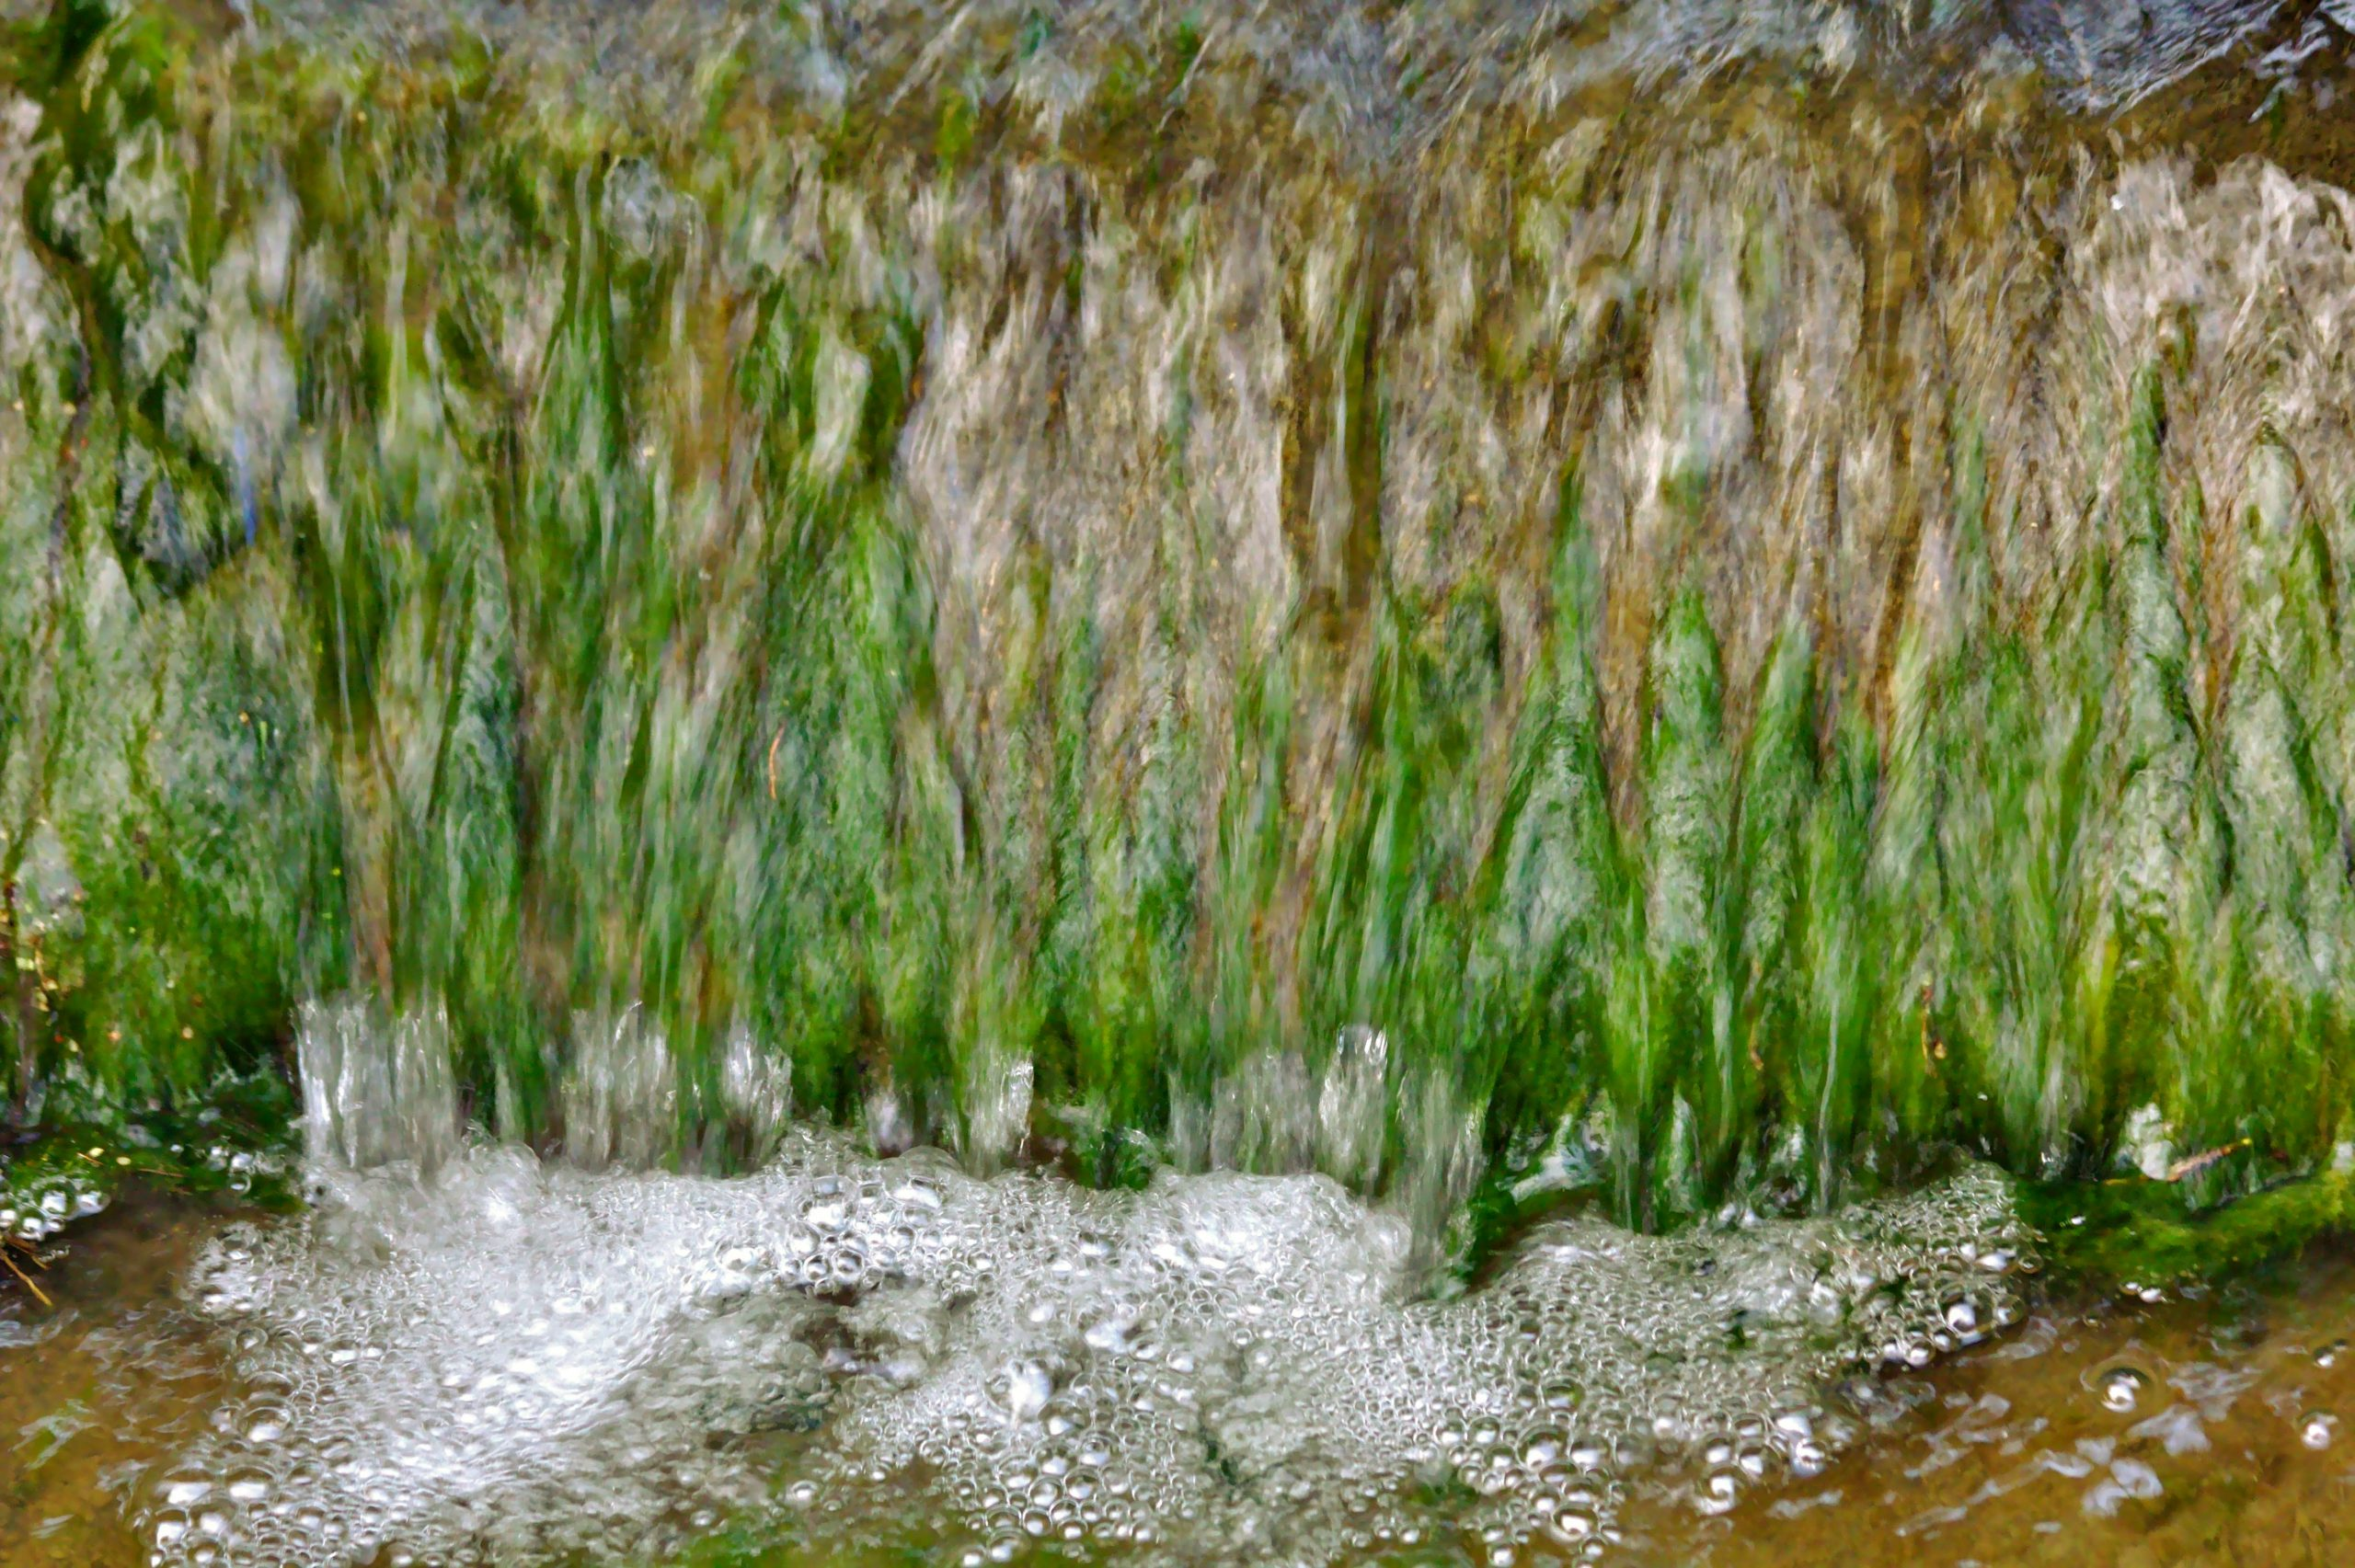 Water bubbles with water running over the algae on the spillway wall blurring the image of the algae.